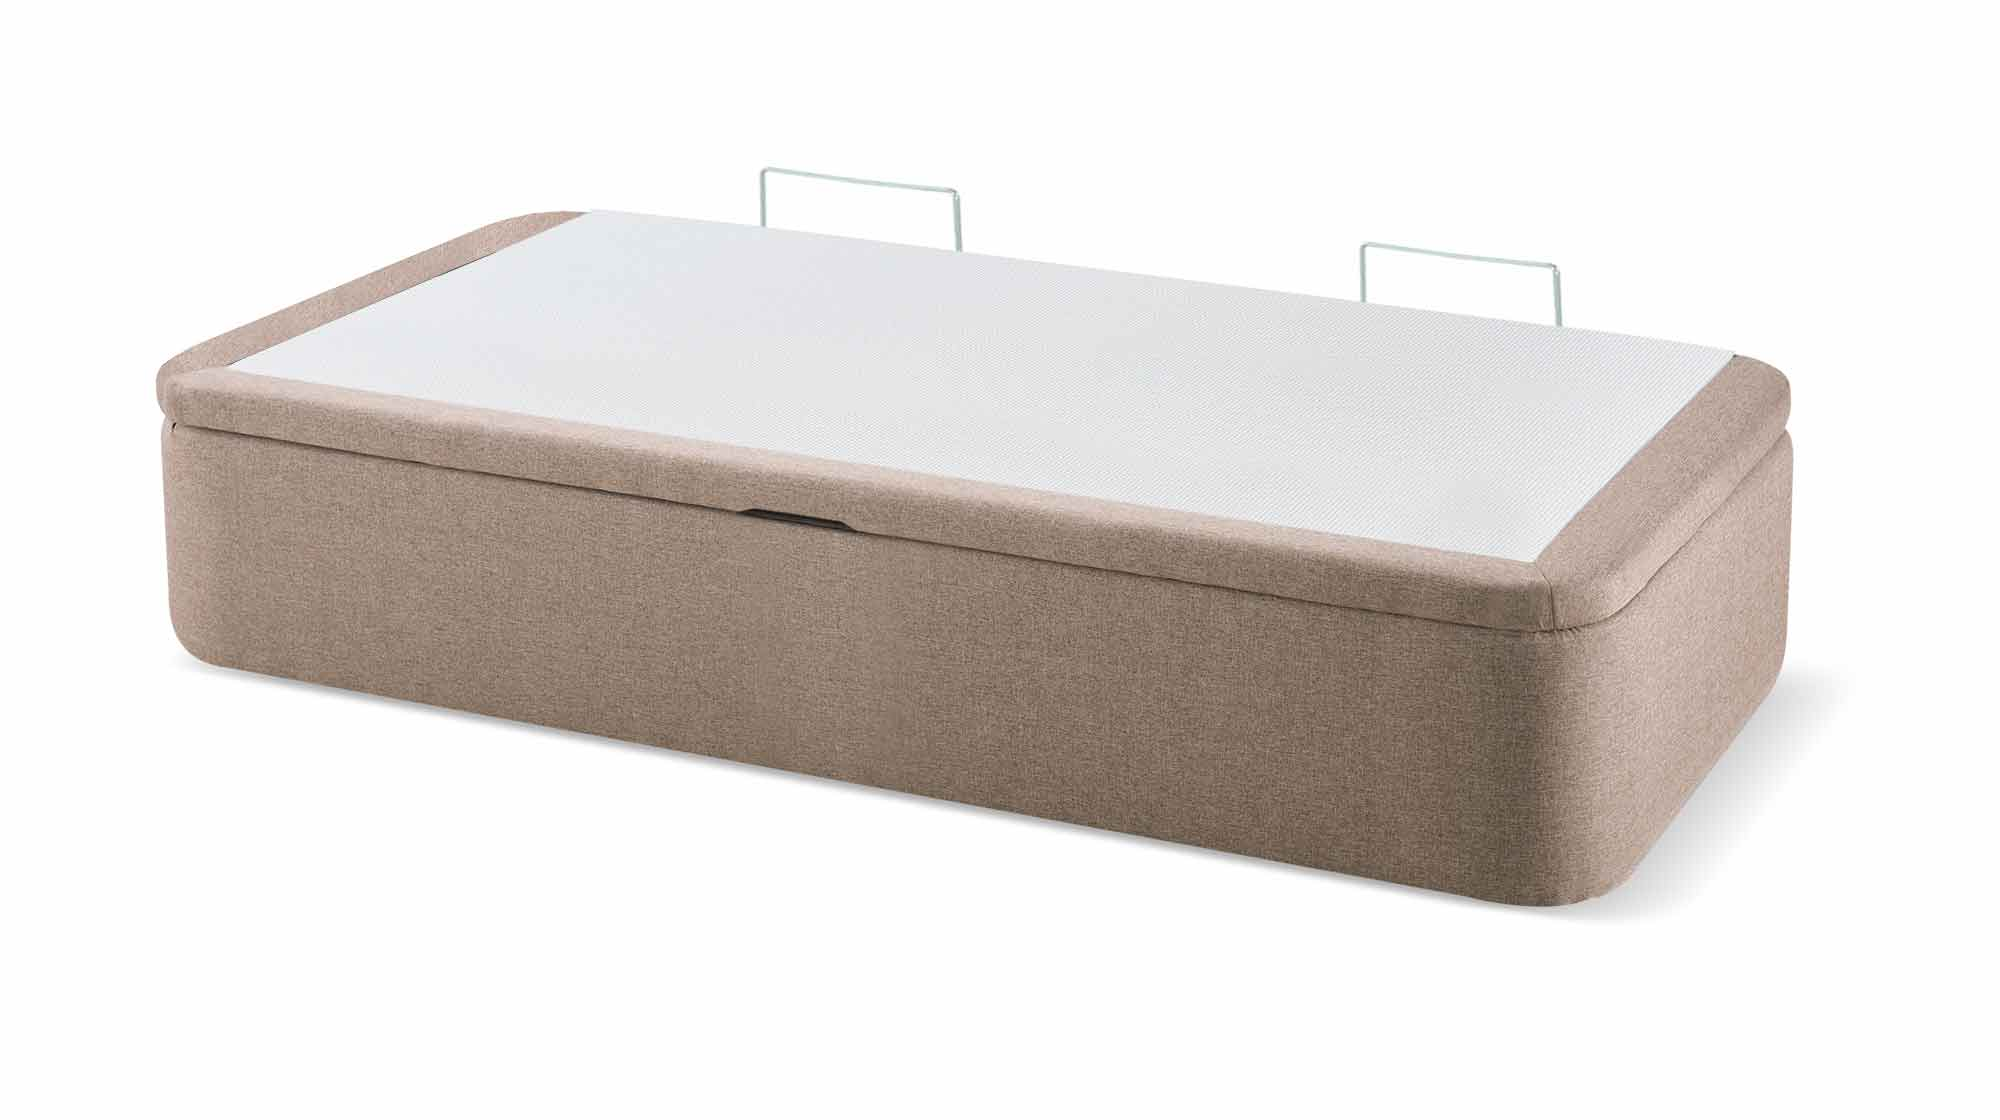 Canap abatible lateral tapa marco maxcolchon for Canape 90x200